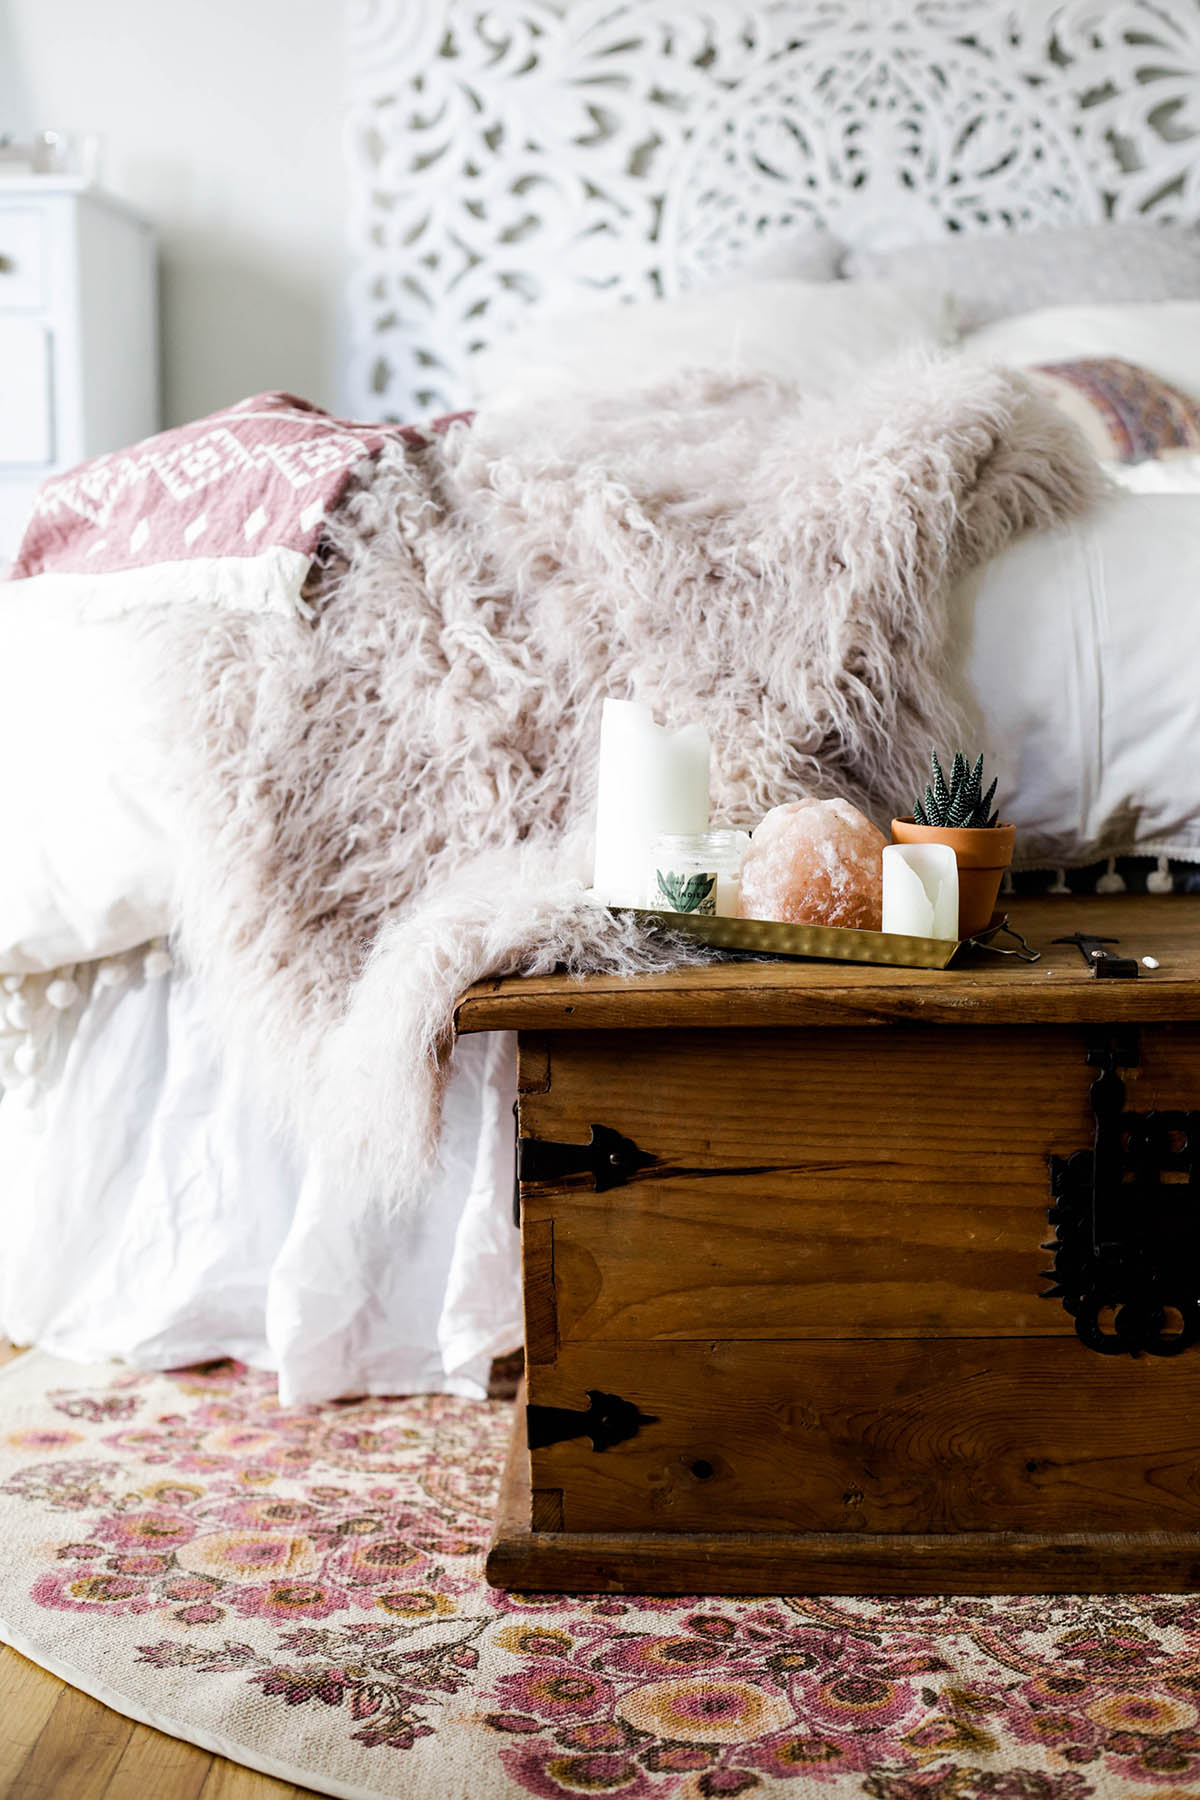 Bedroom Ideas Urban Outfitters How To Brighten Up Your Bedroom For Summer Advice From A